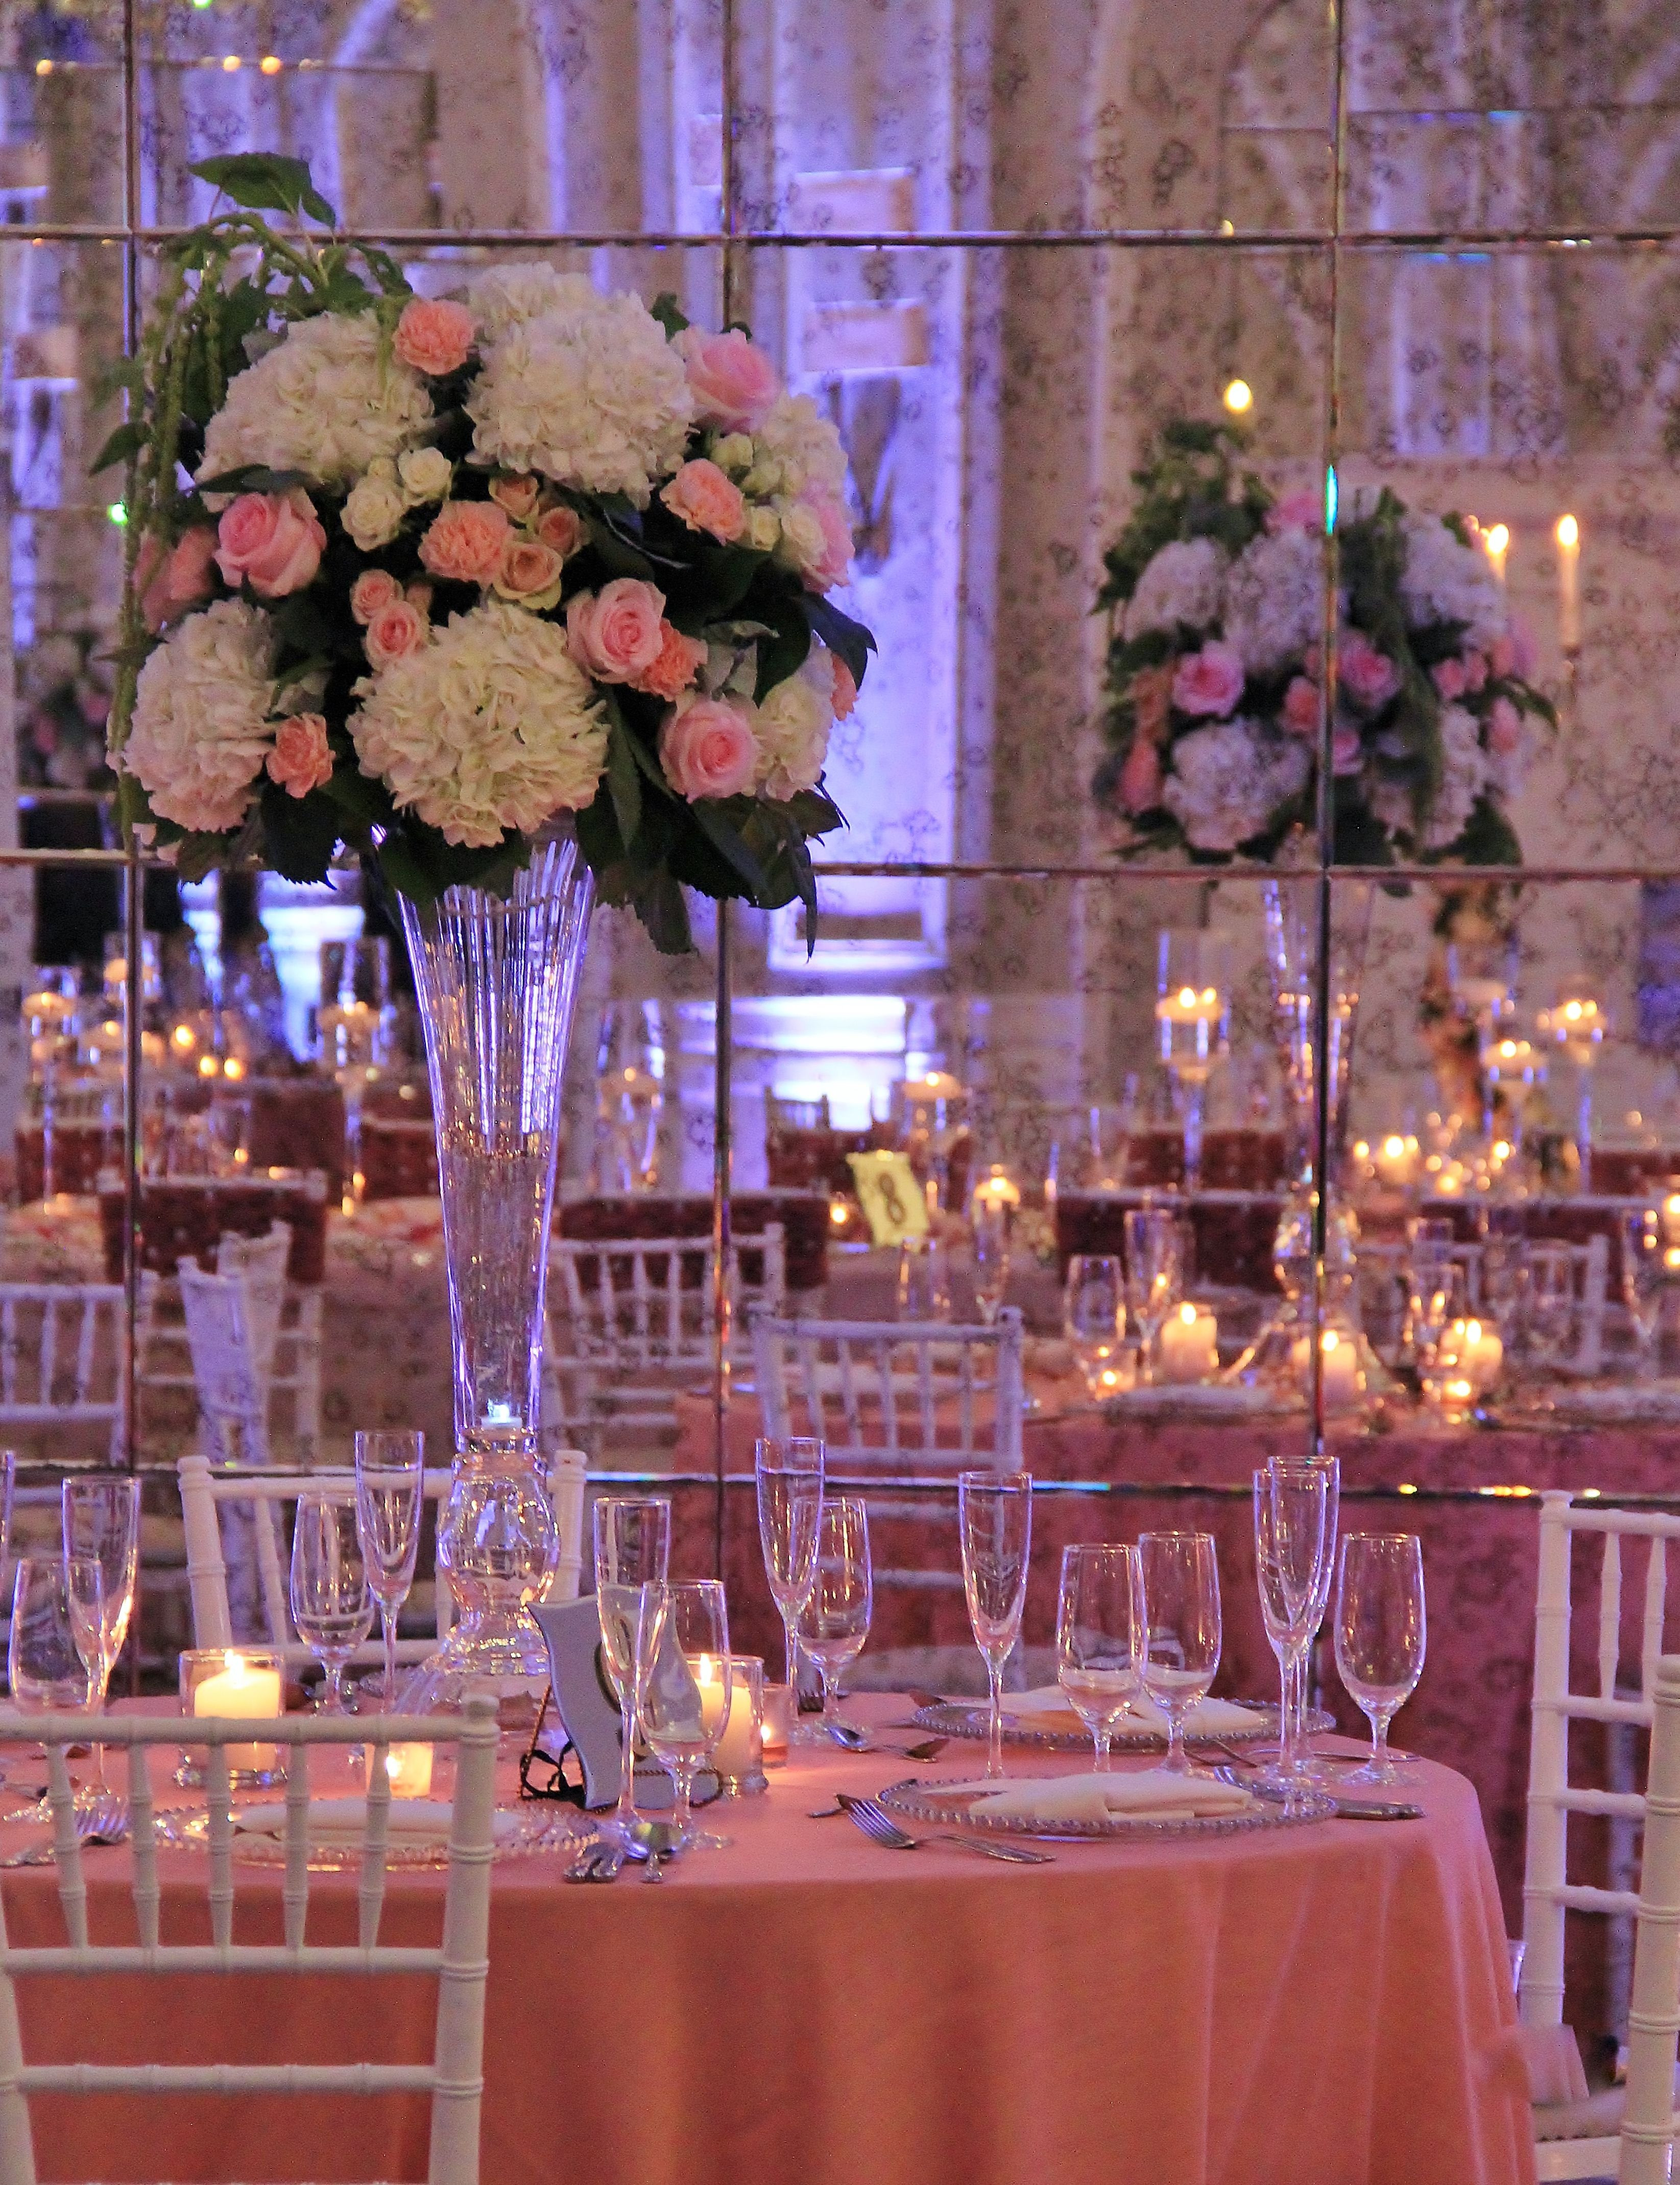 gold vase stand of edding centerpieces fresh gold vase stratadime in wedding floral centerpieces fresh trumpet vases filled at the crystal ballroom with hydrangeas spray wedding